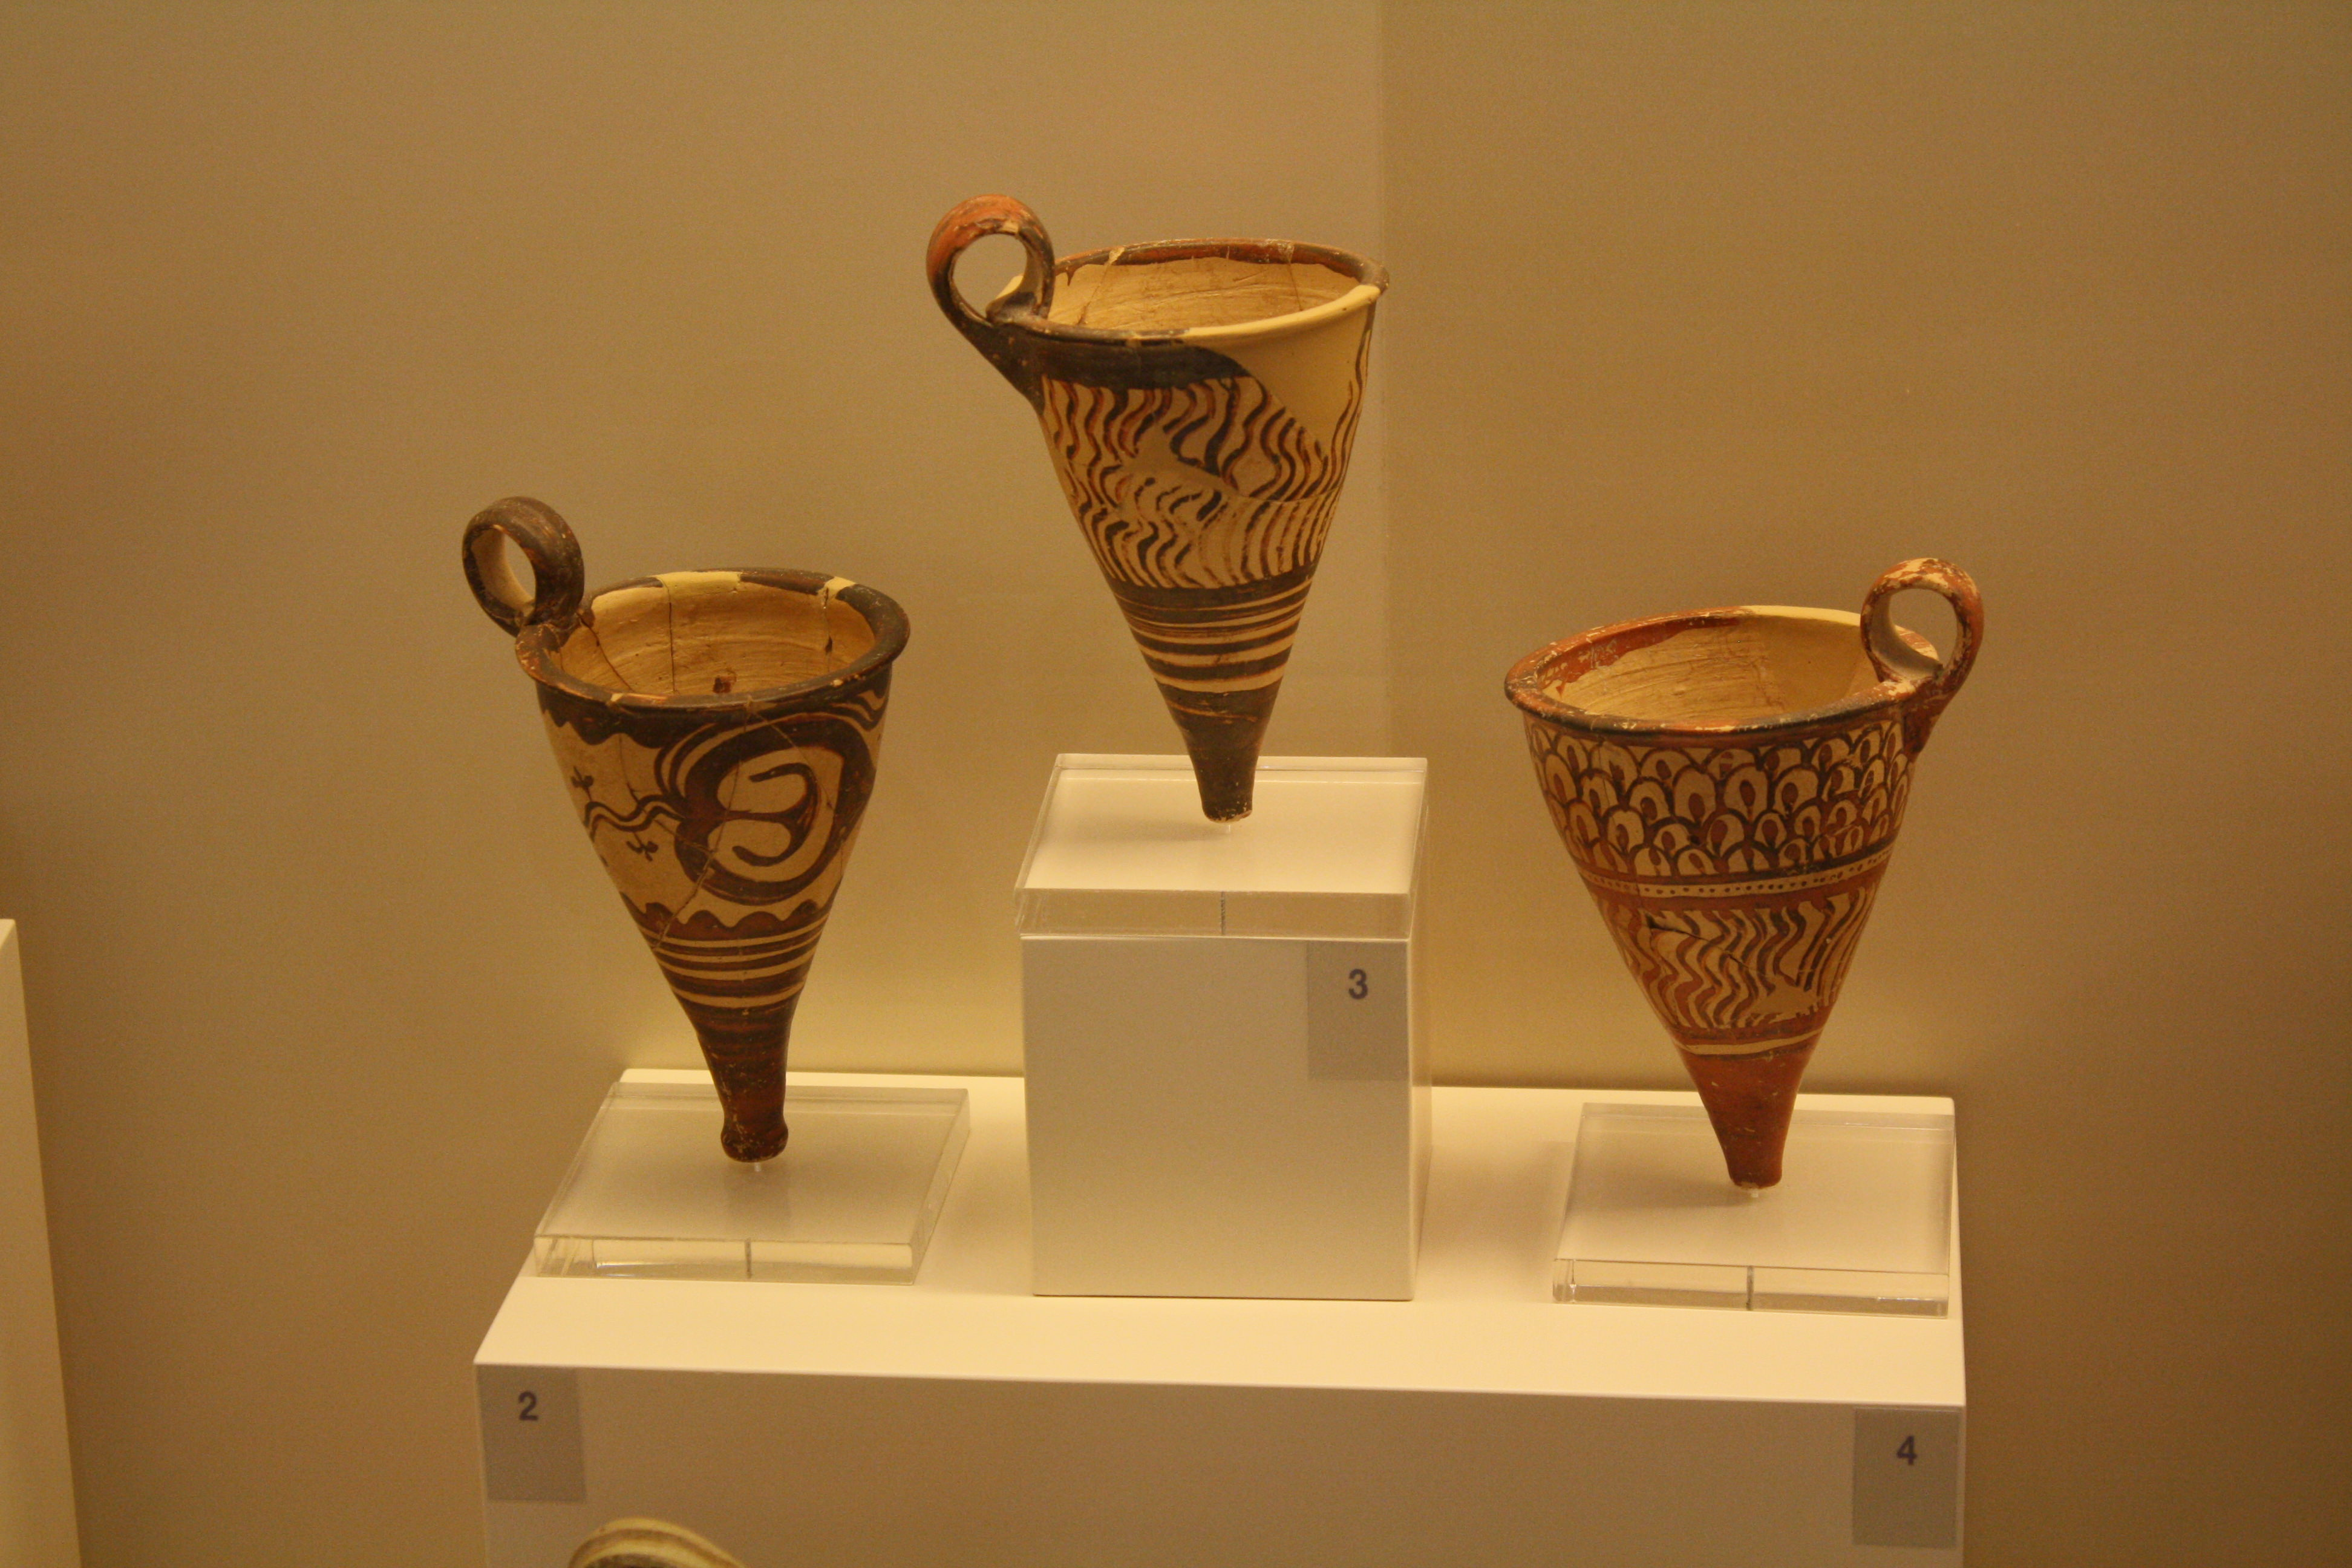 A visual glossary of greek pottery article ancient history rhyton pl rhyta used in relgious practices for the pouring of libations they may also take the shape of animal heads especially bulls reviewsmspy